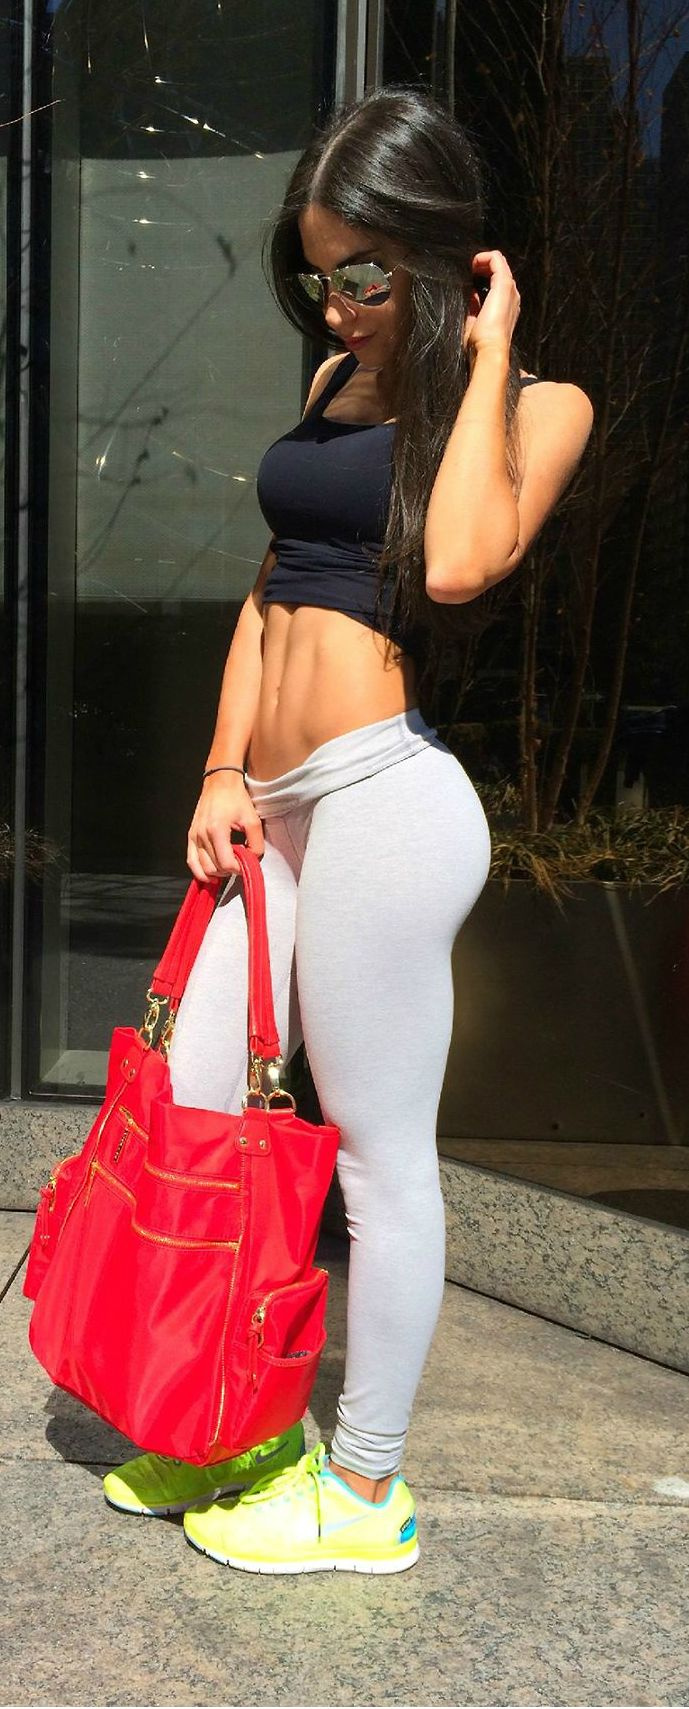 pinterest.com/Justine1515/ The Perfect Workout Outfit